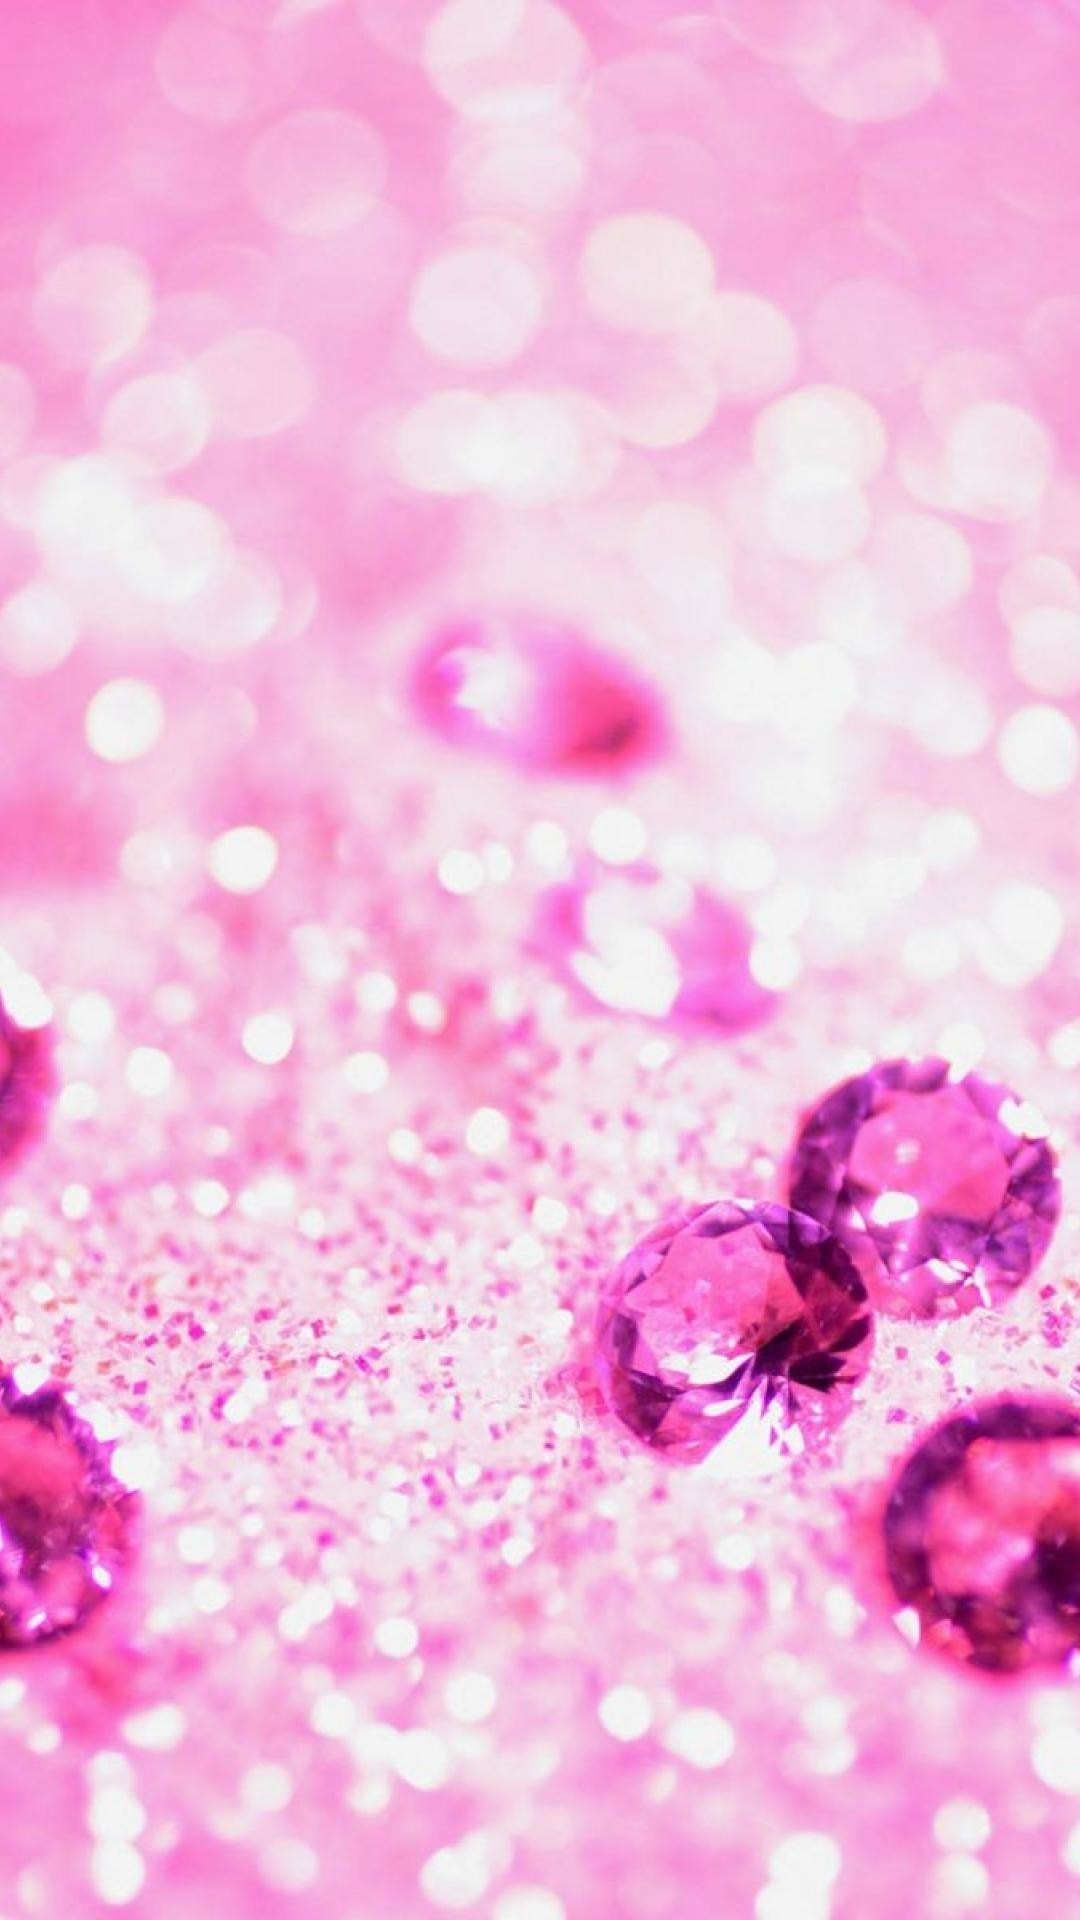 Lots of pink jewelry   Girly glitter iPhone wallpapers